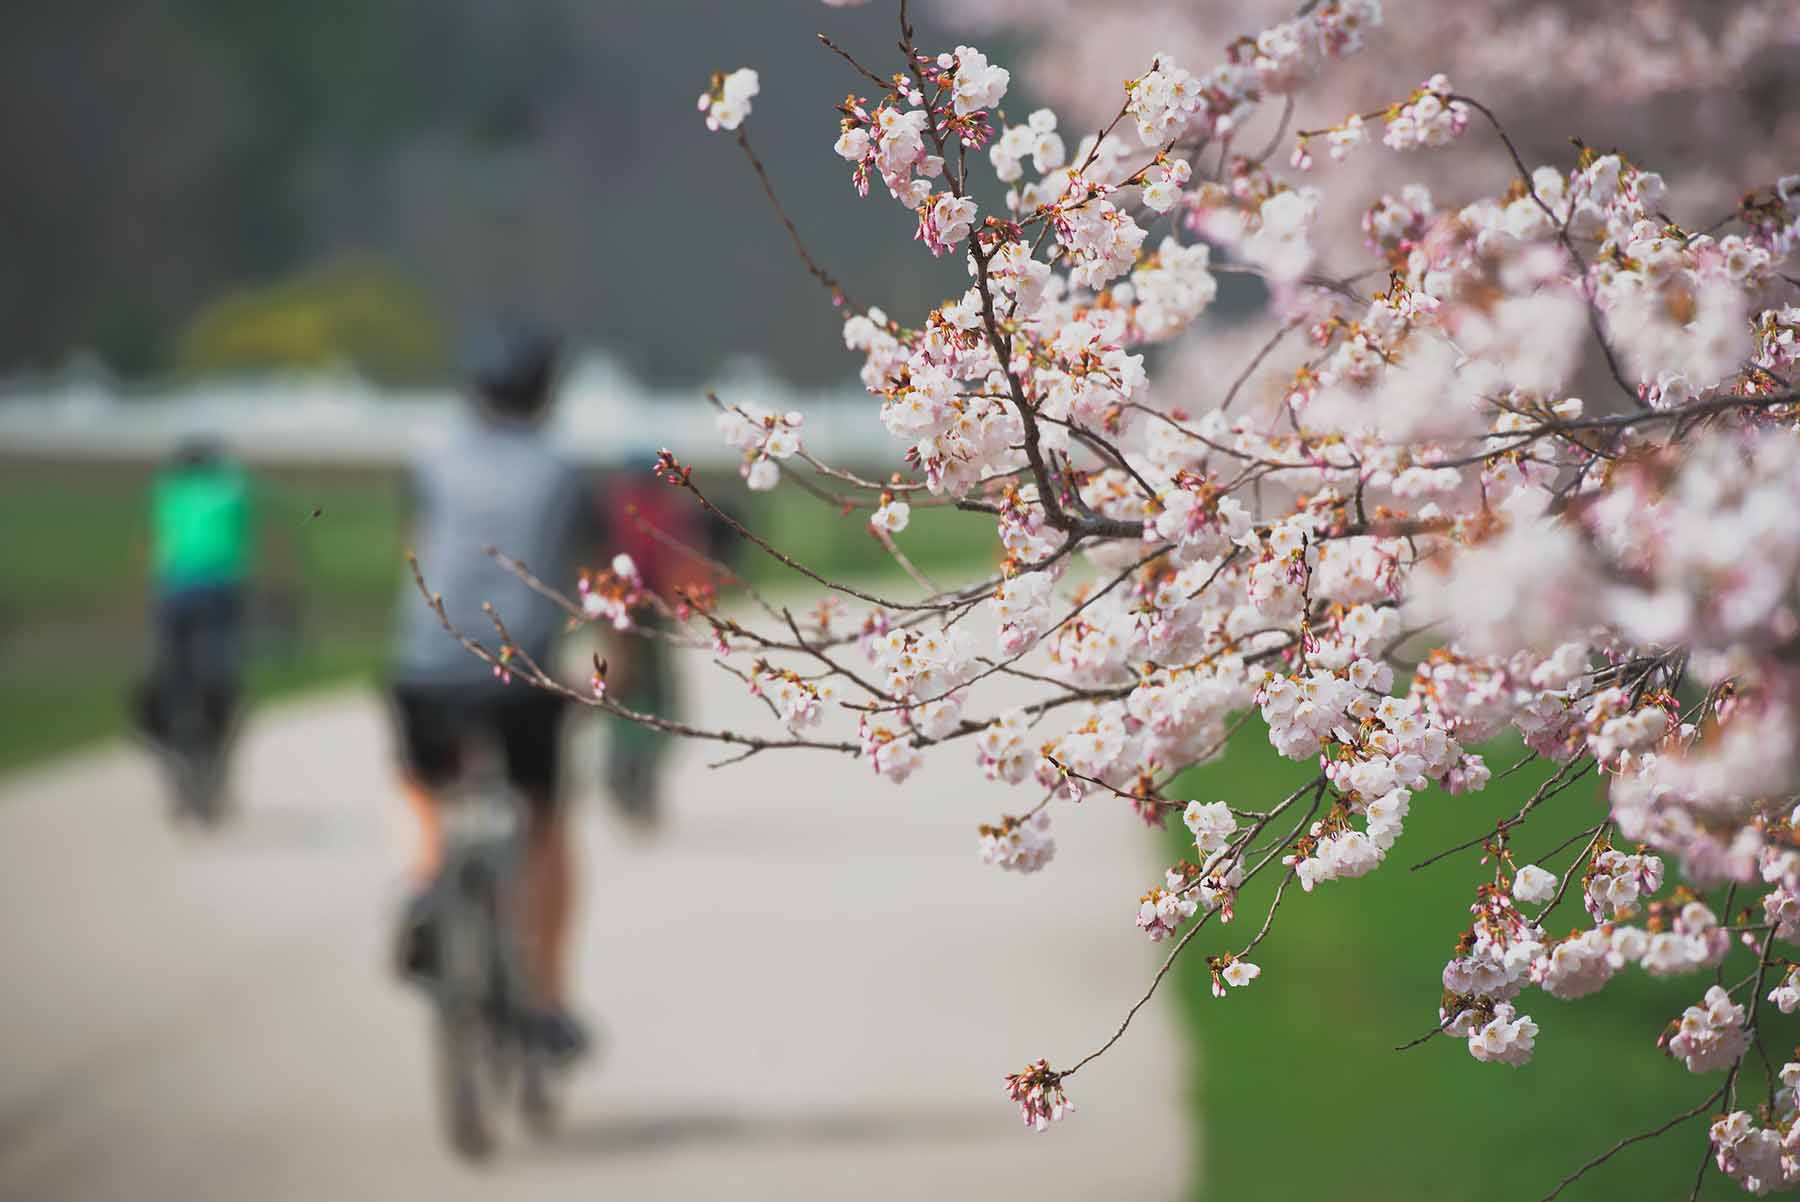 Out of focus cyclists going past a flowering cherry blossom tree